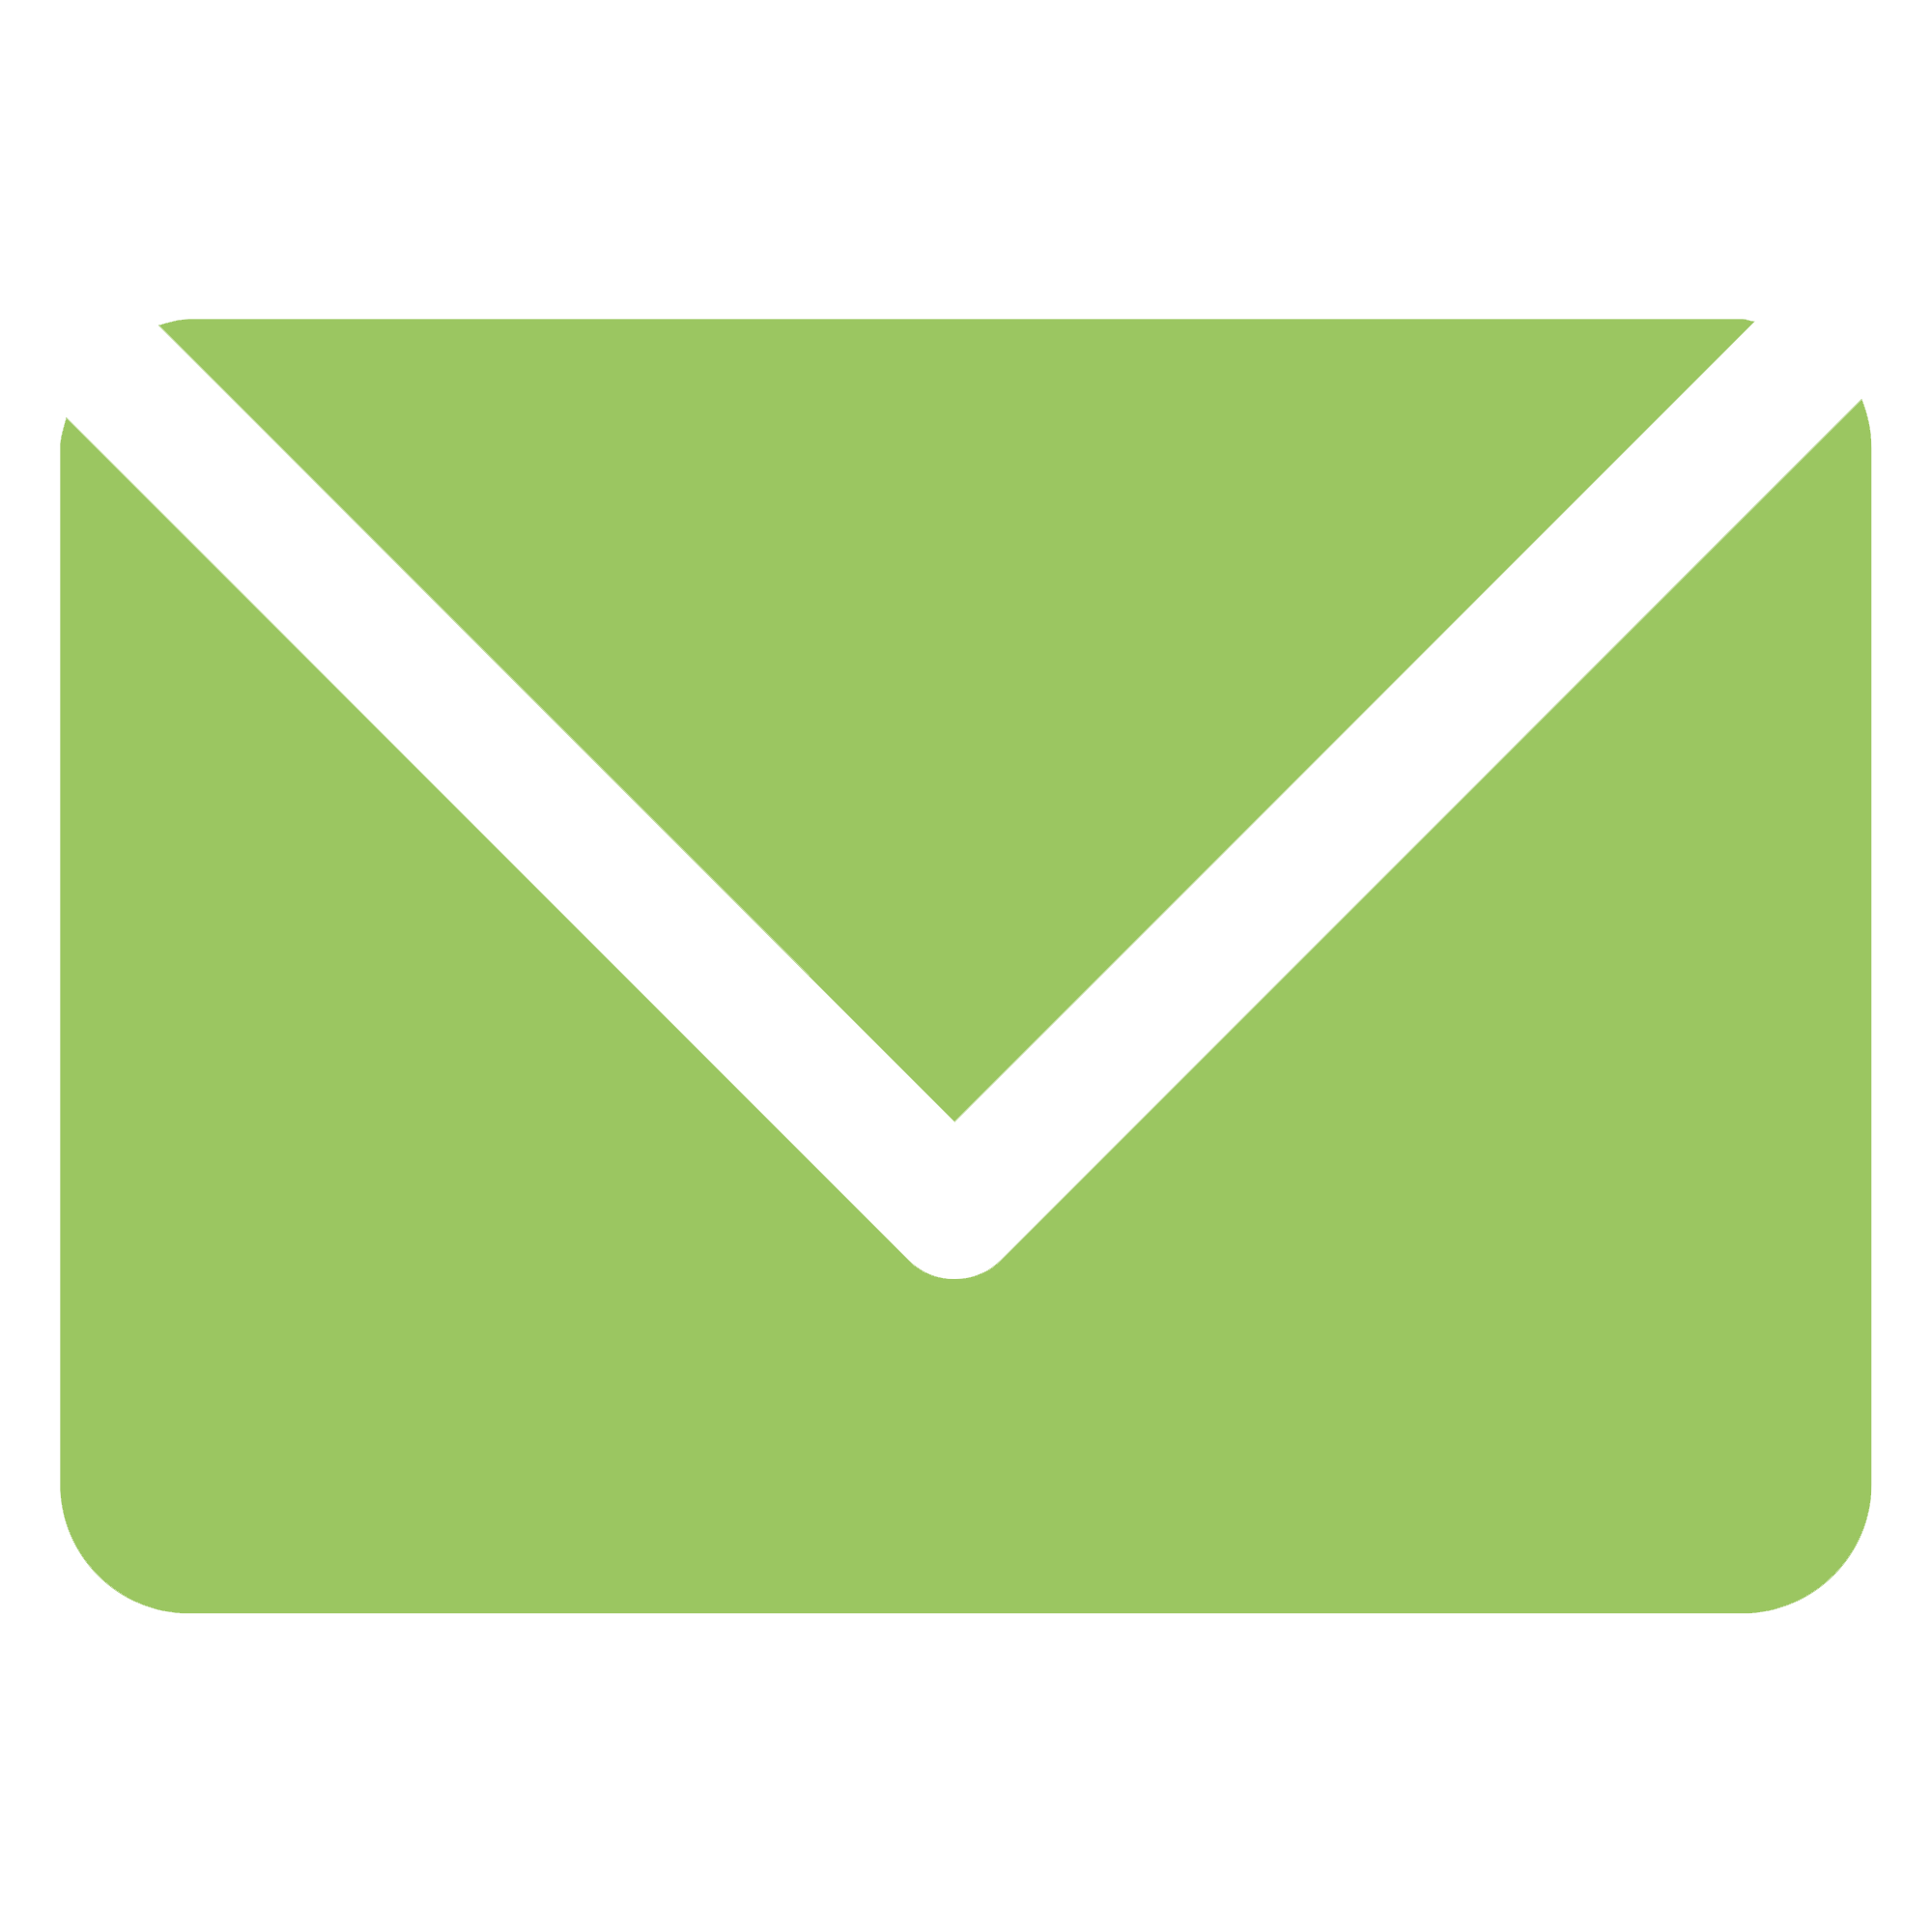 Icon letter green